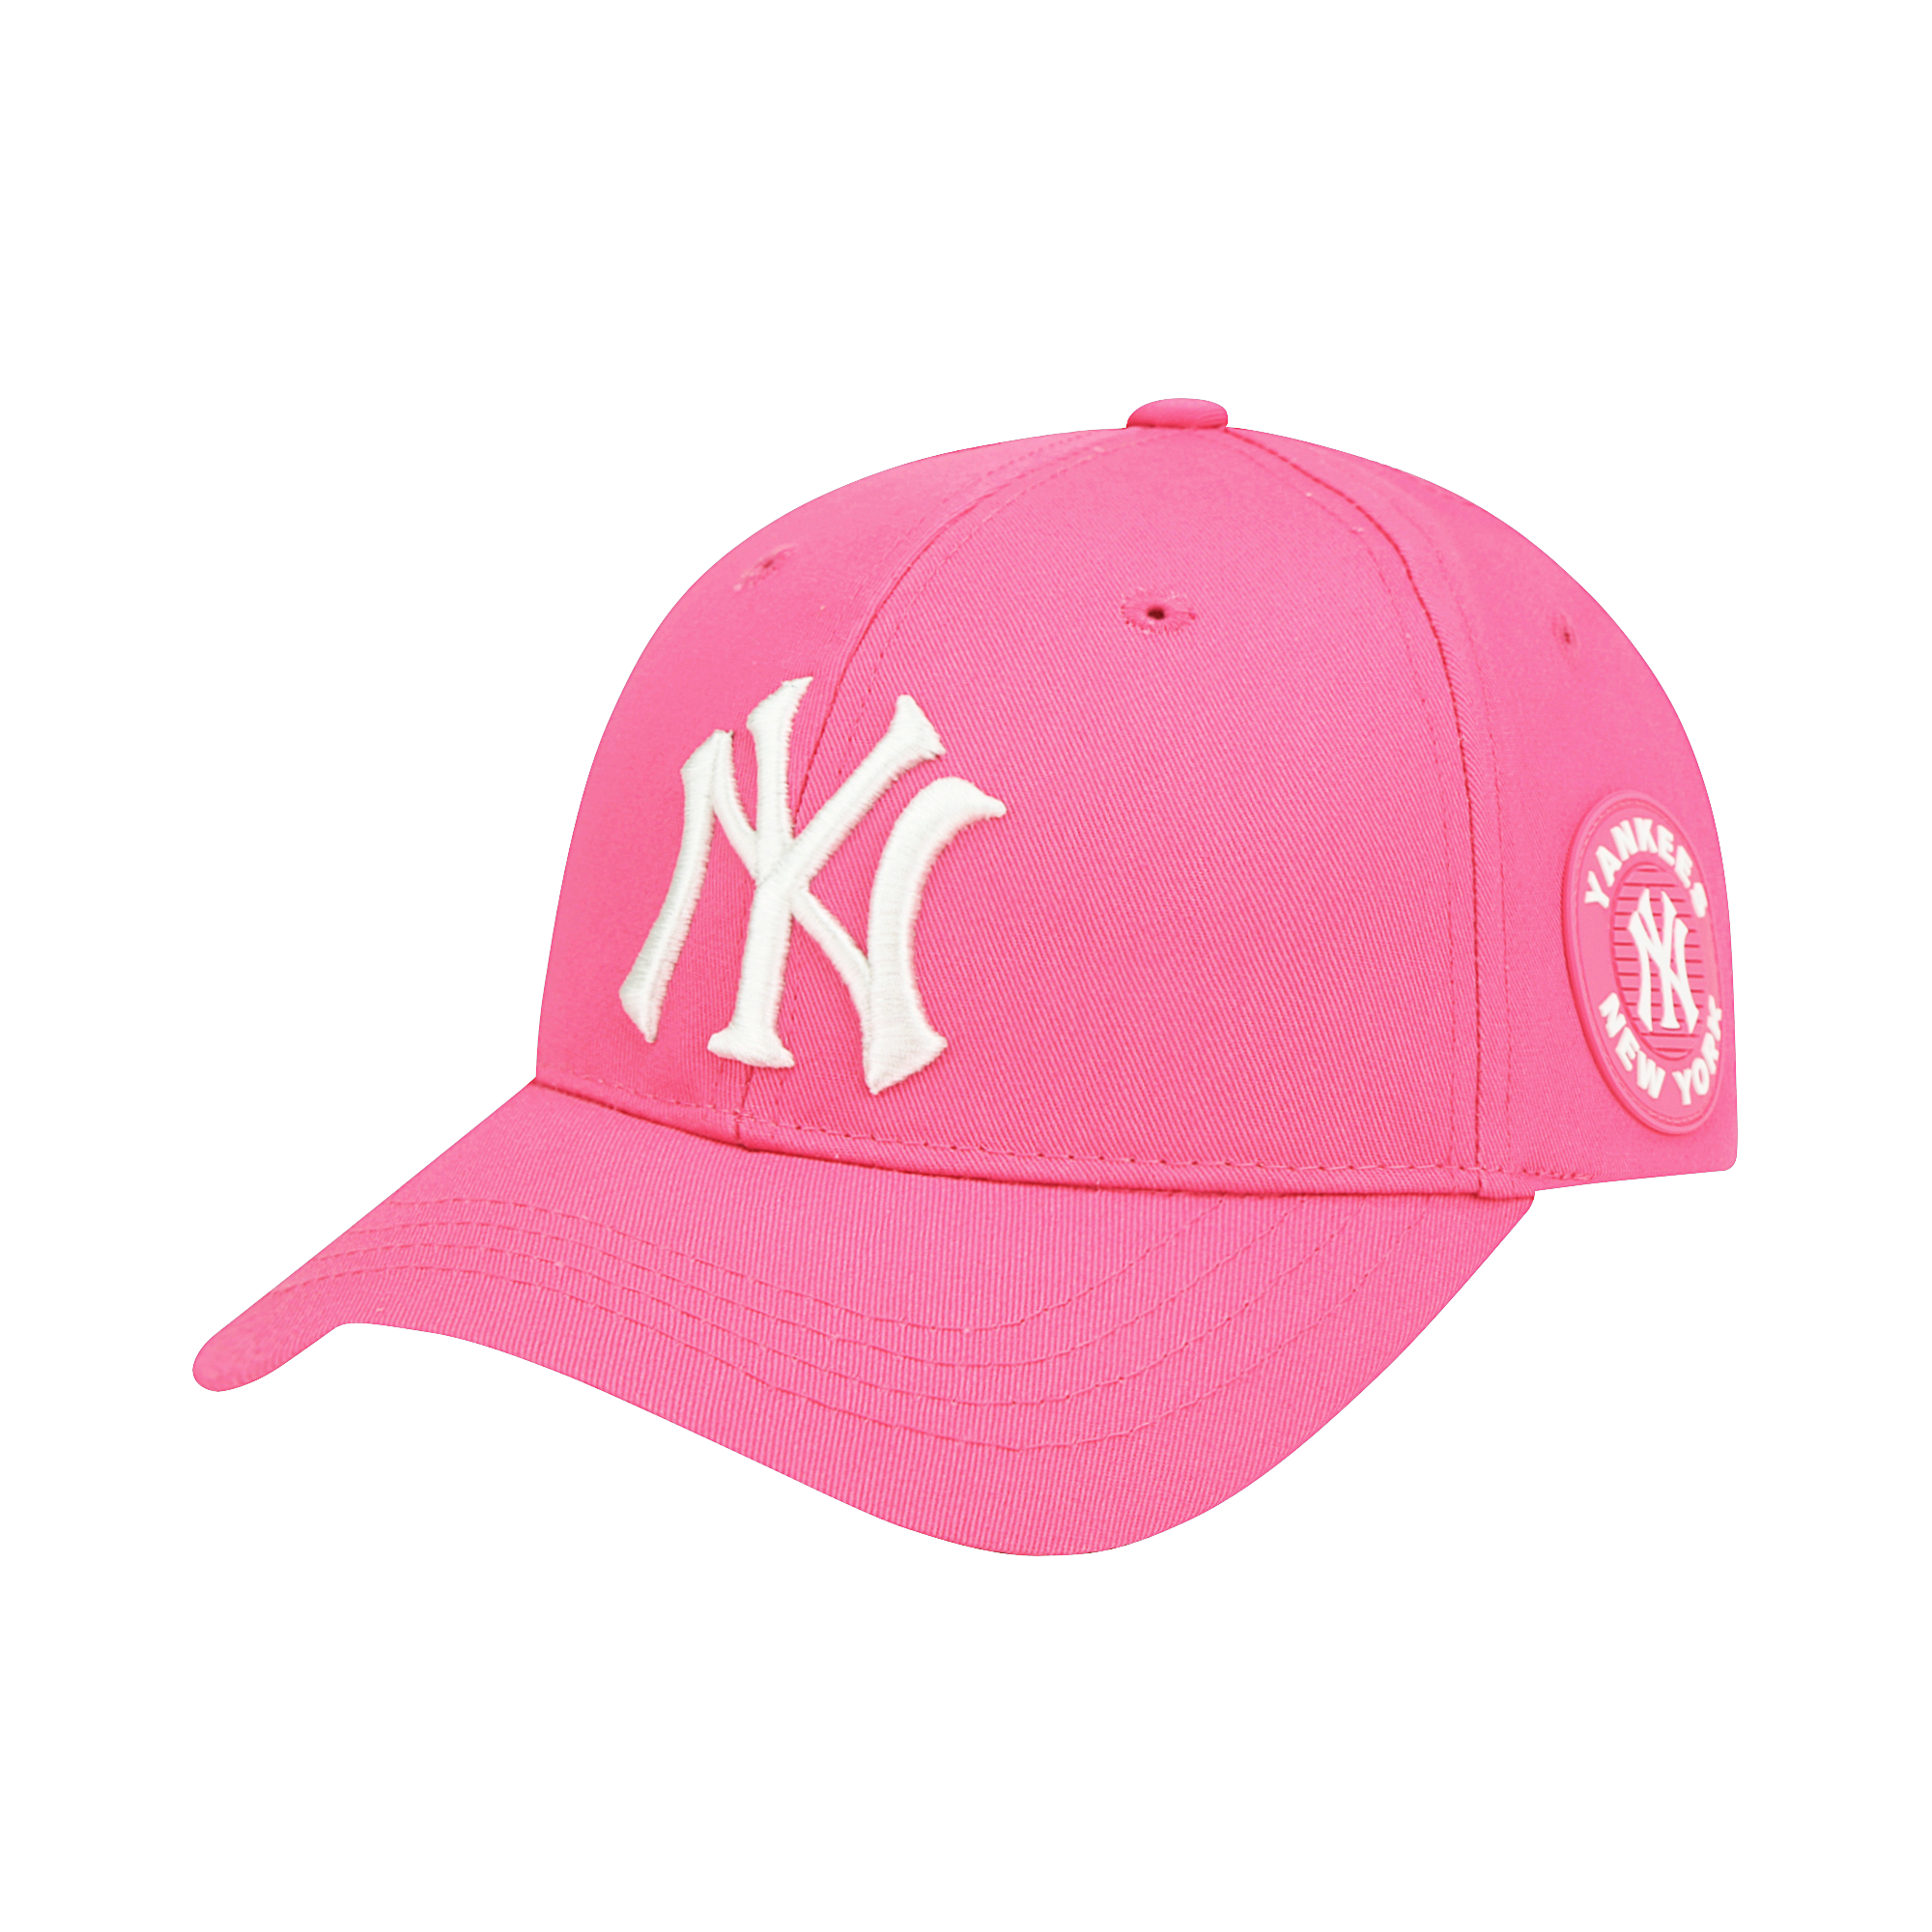 NEW YORK YANKEES NEOS NEON WAPPEN CURVED CAP